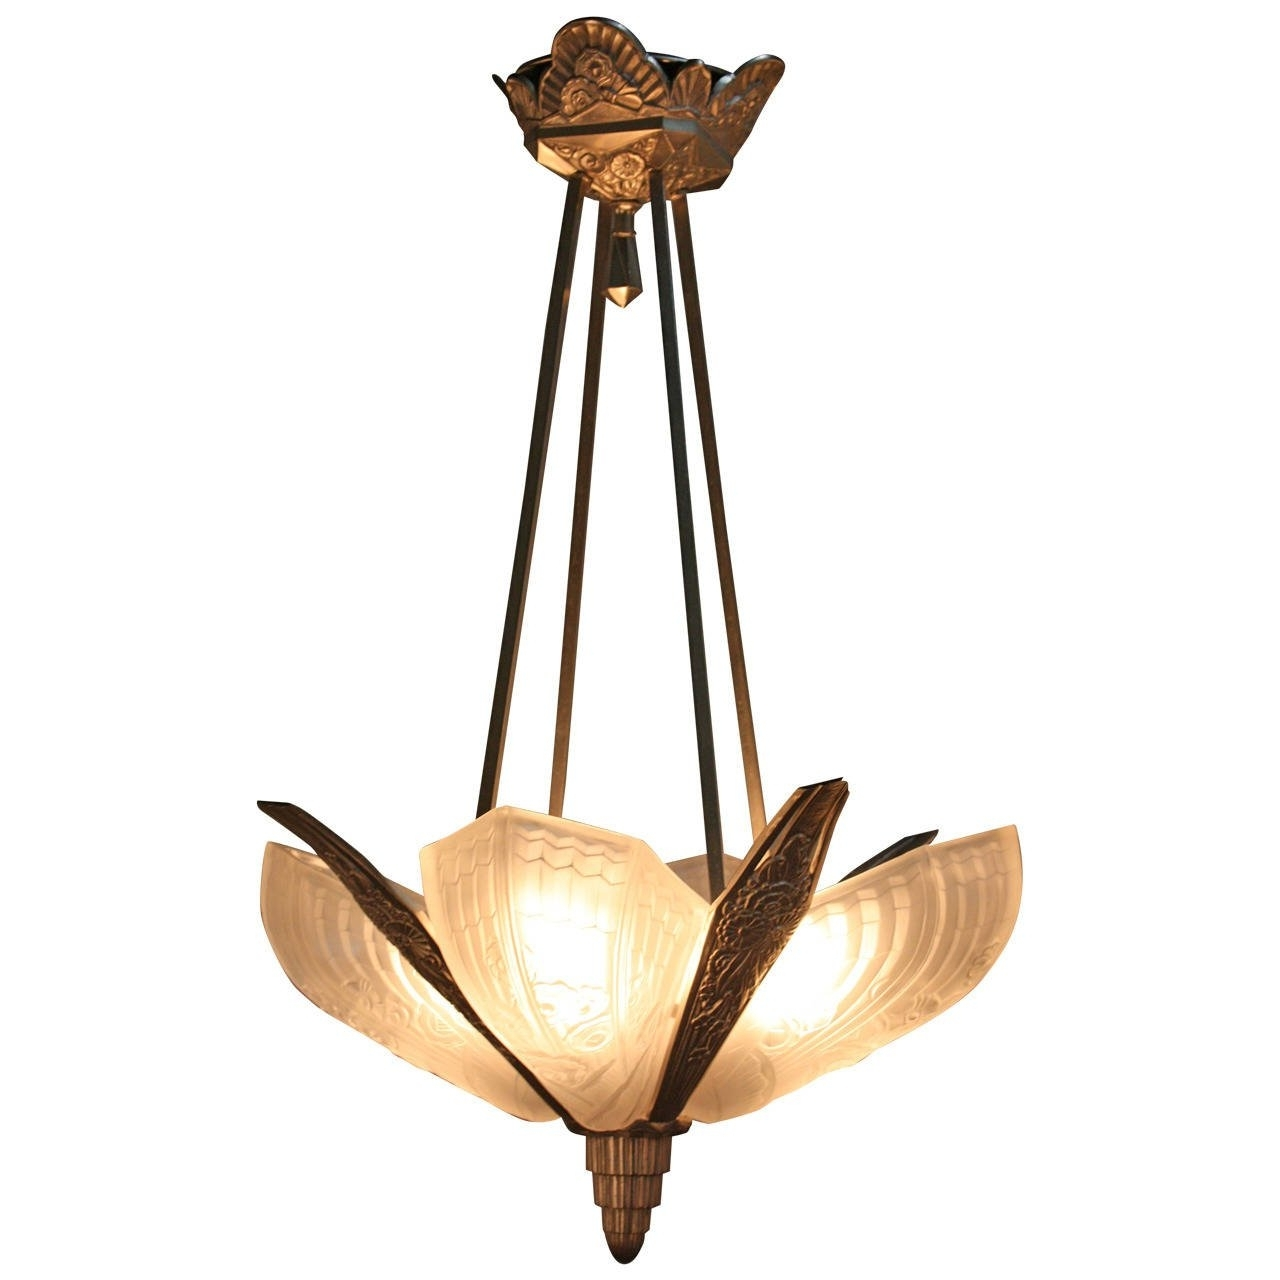 Recent 1920S Art Deco Chandelier At 1Stdibs Within Art Deco Chandeliers (View 10 of 15)